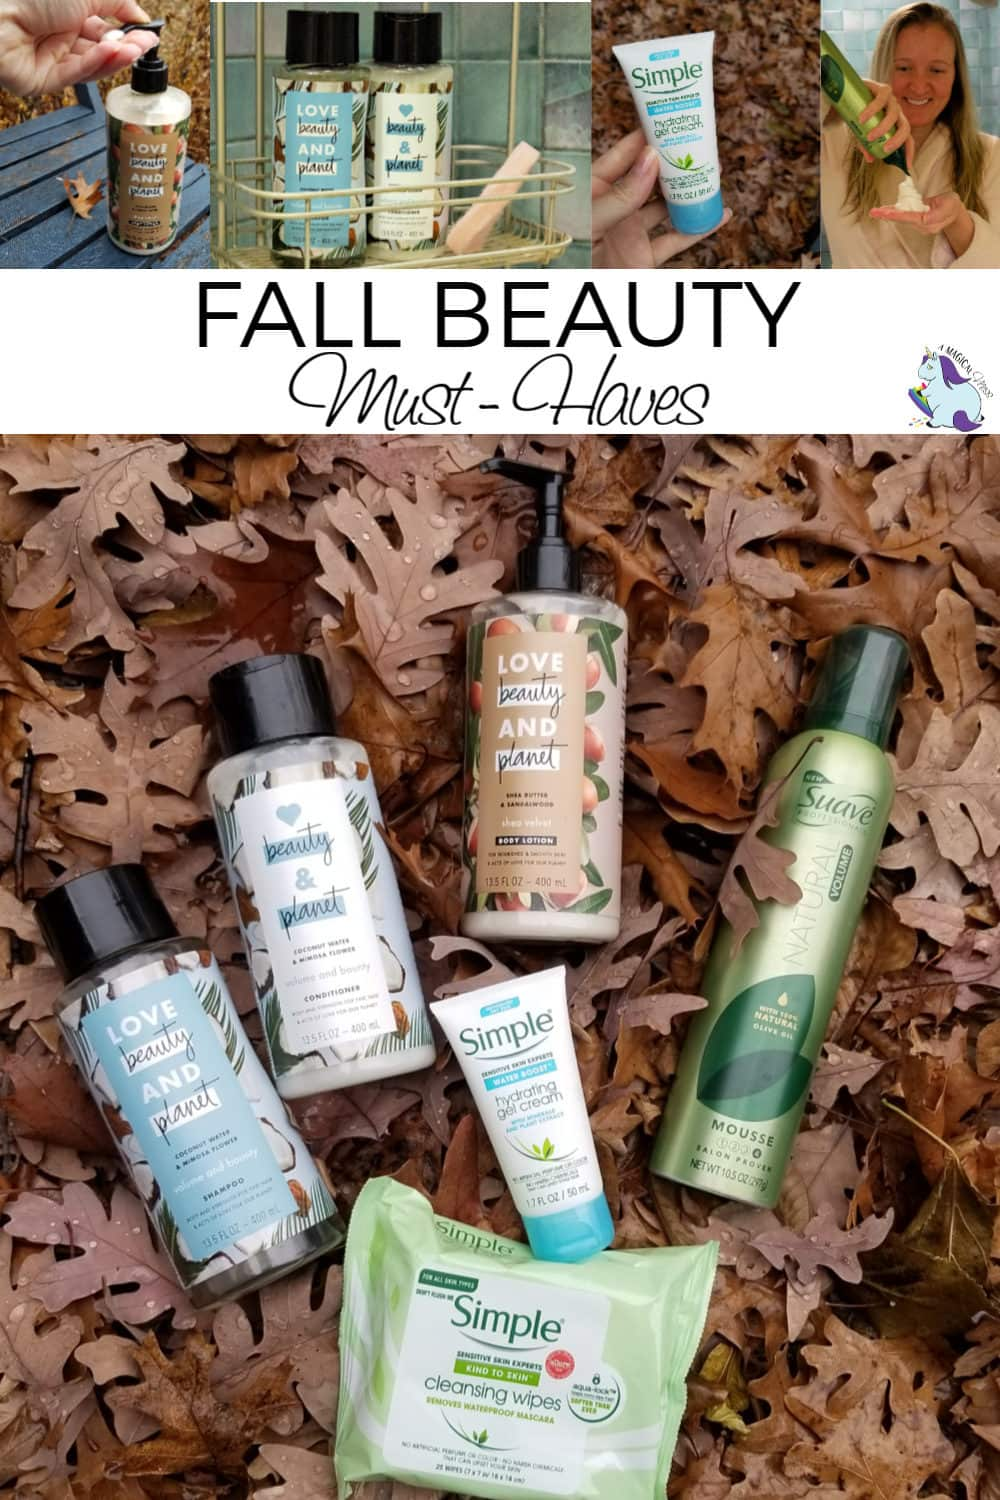 Sponsored Partnership: Fall Beauty Must - Haves all found at Jewel-Osco! #TakeANewLook18